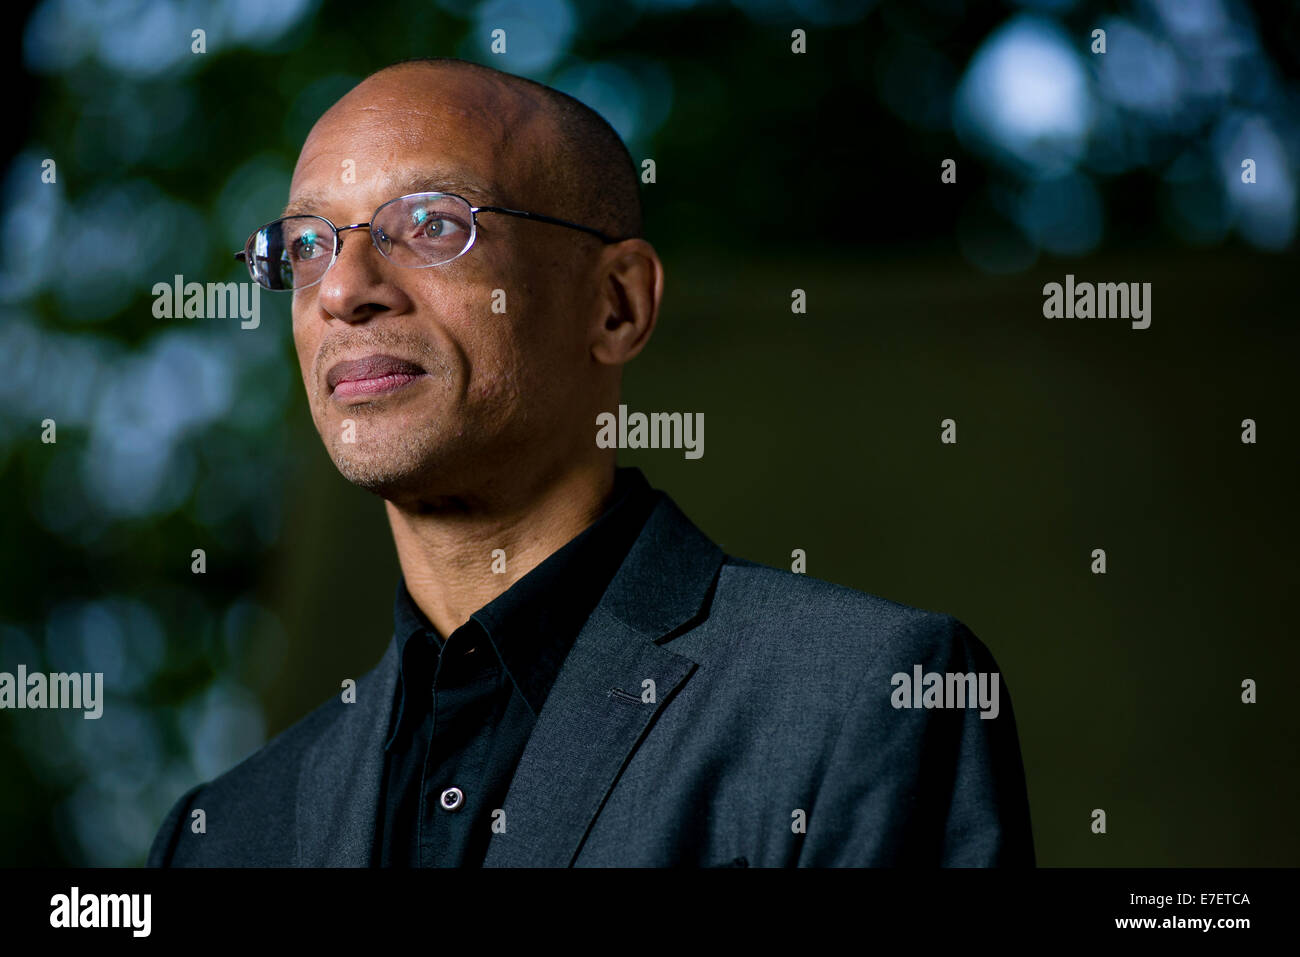 British-Guyanese poet, novelist and playwright Fred D'Aguiar appears at the Edinburgh International Book Festival. - Stock Image